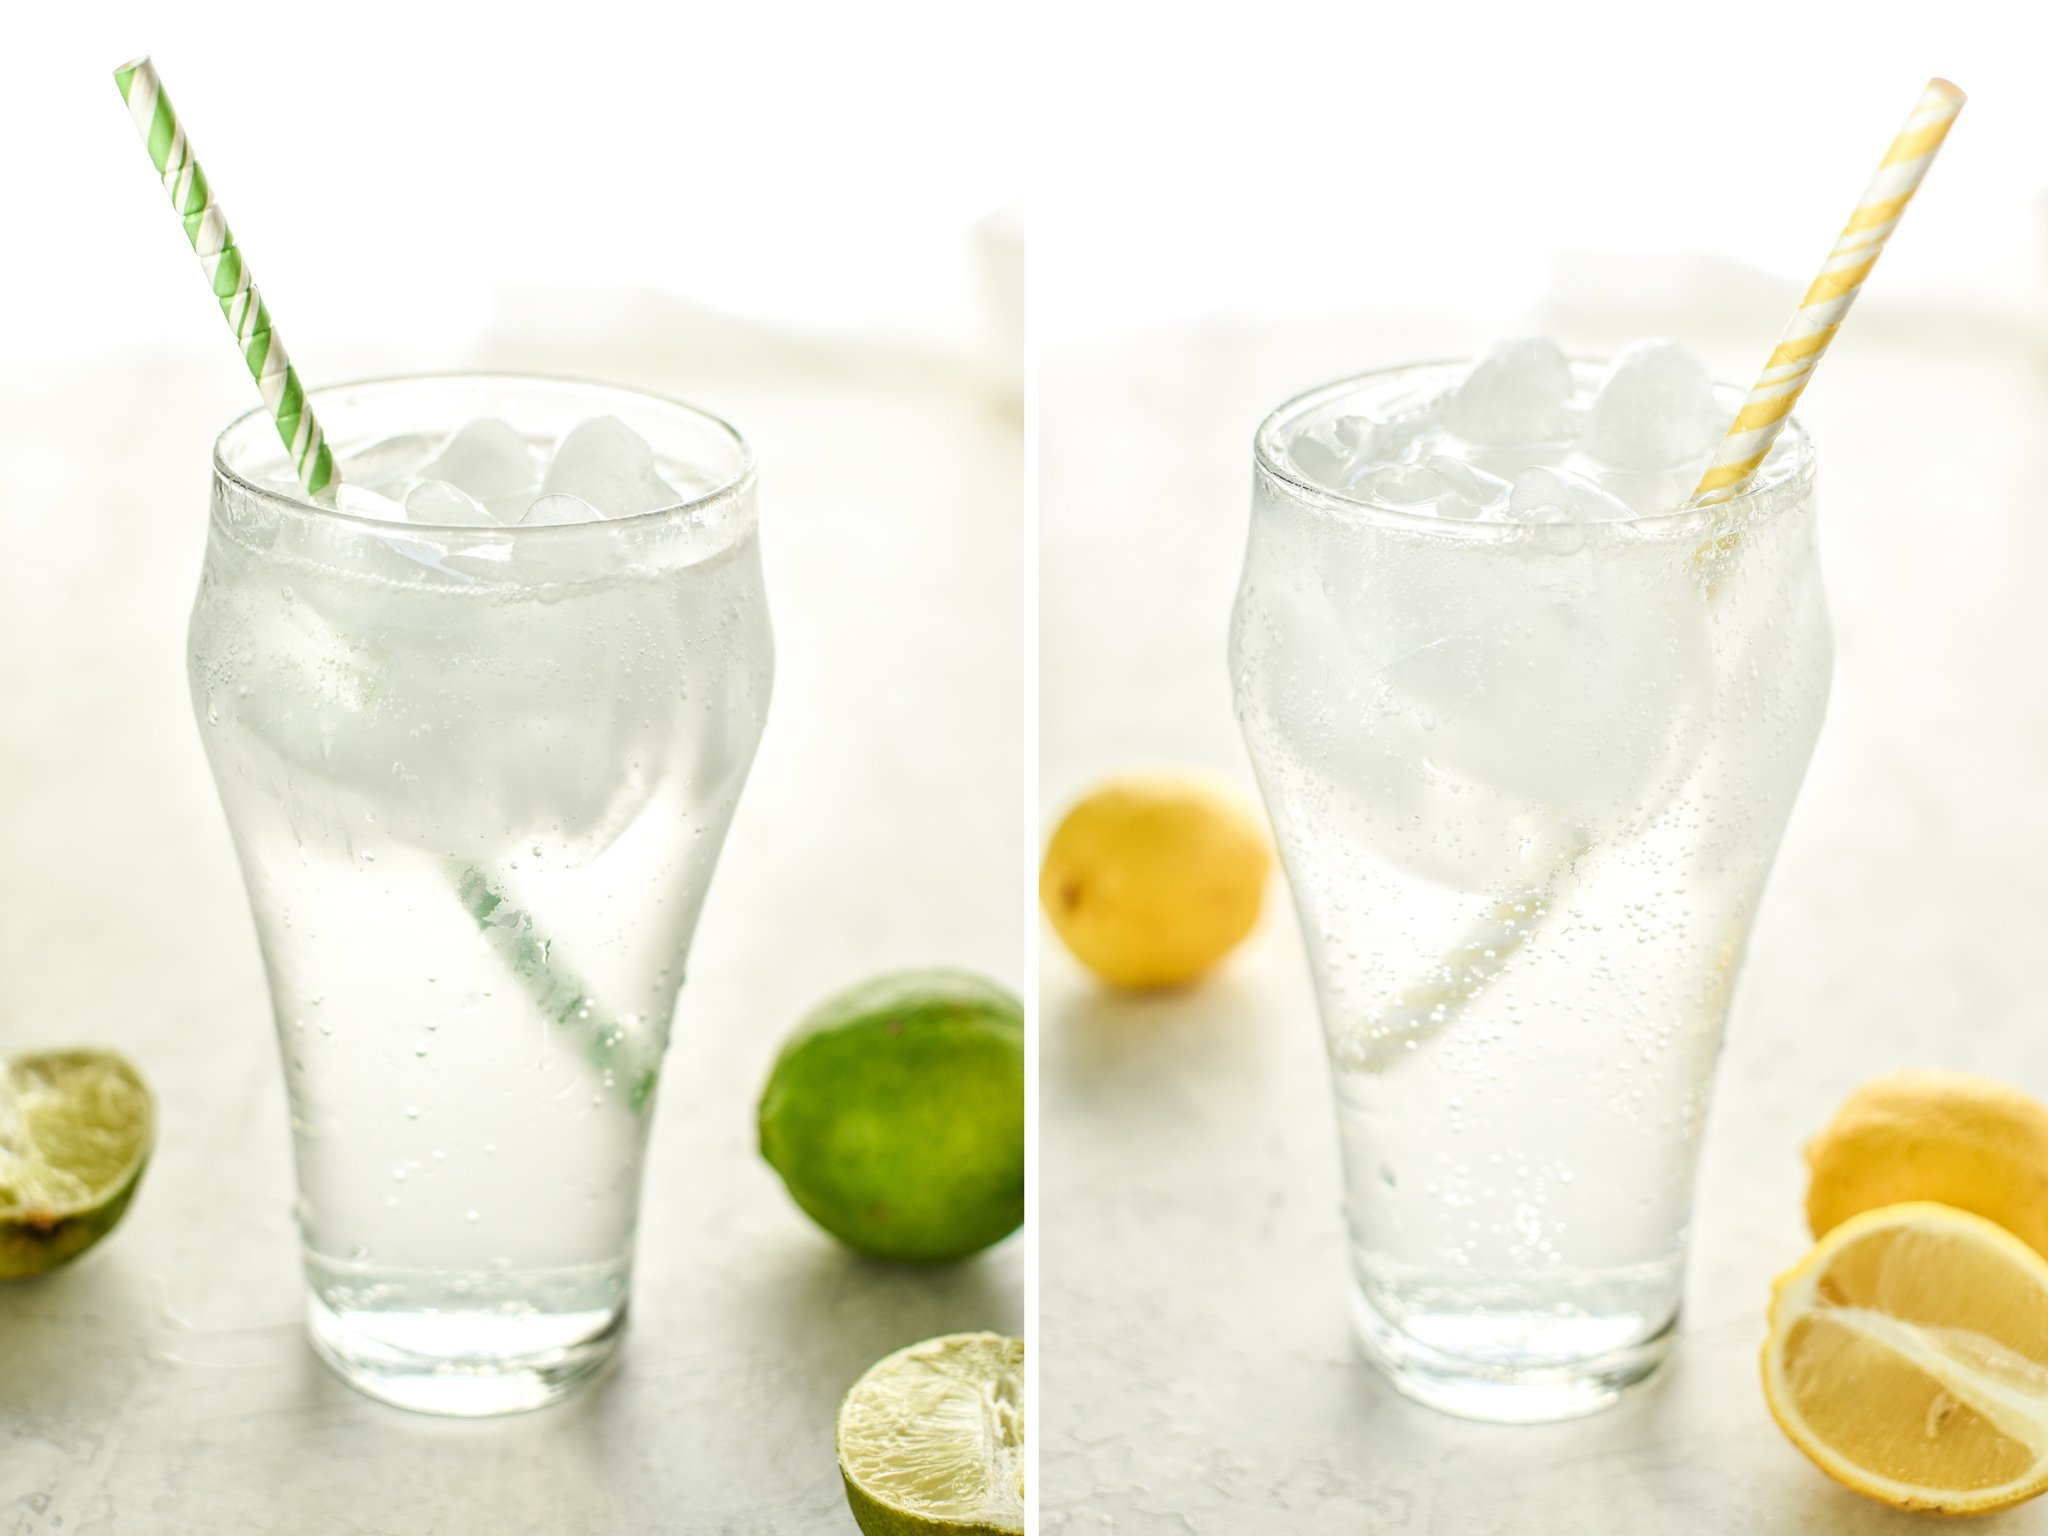 Two different variations of homemade la croix in big glasses with ice and straws, including lemon and lime.